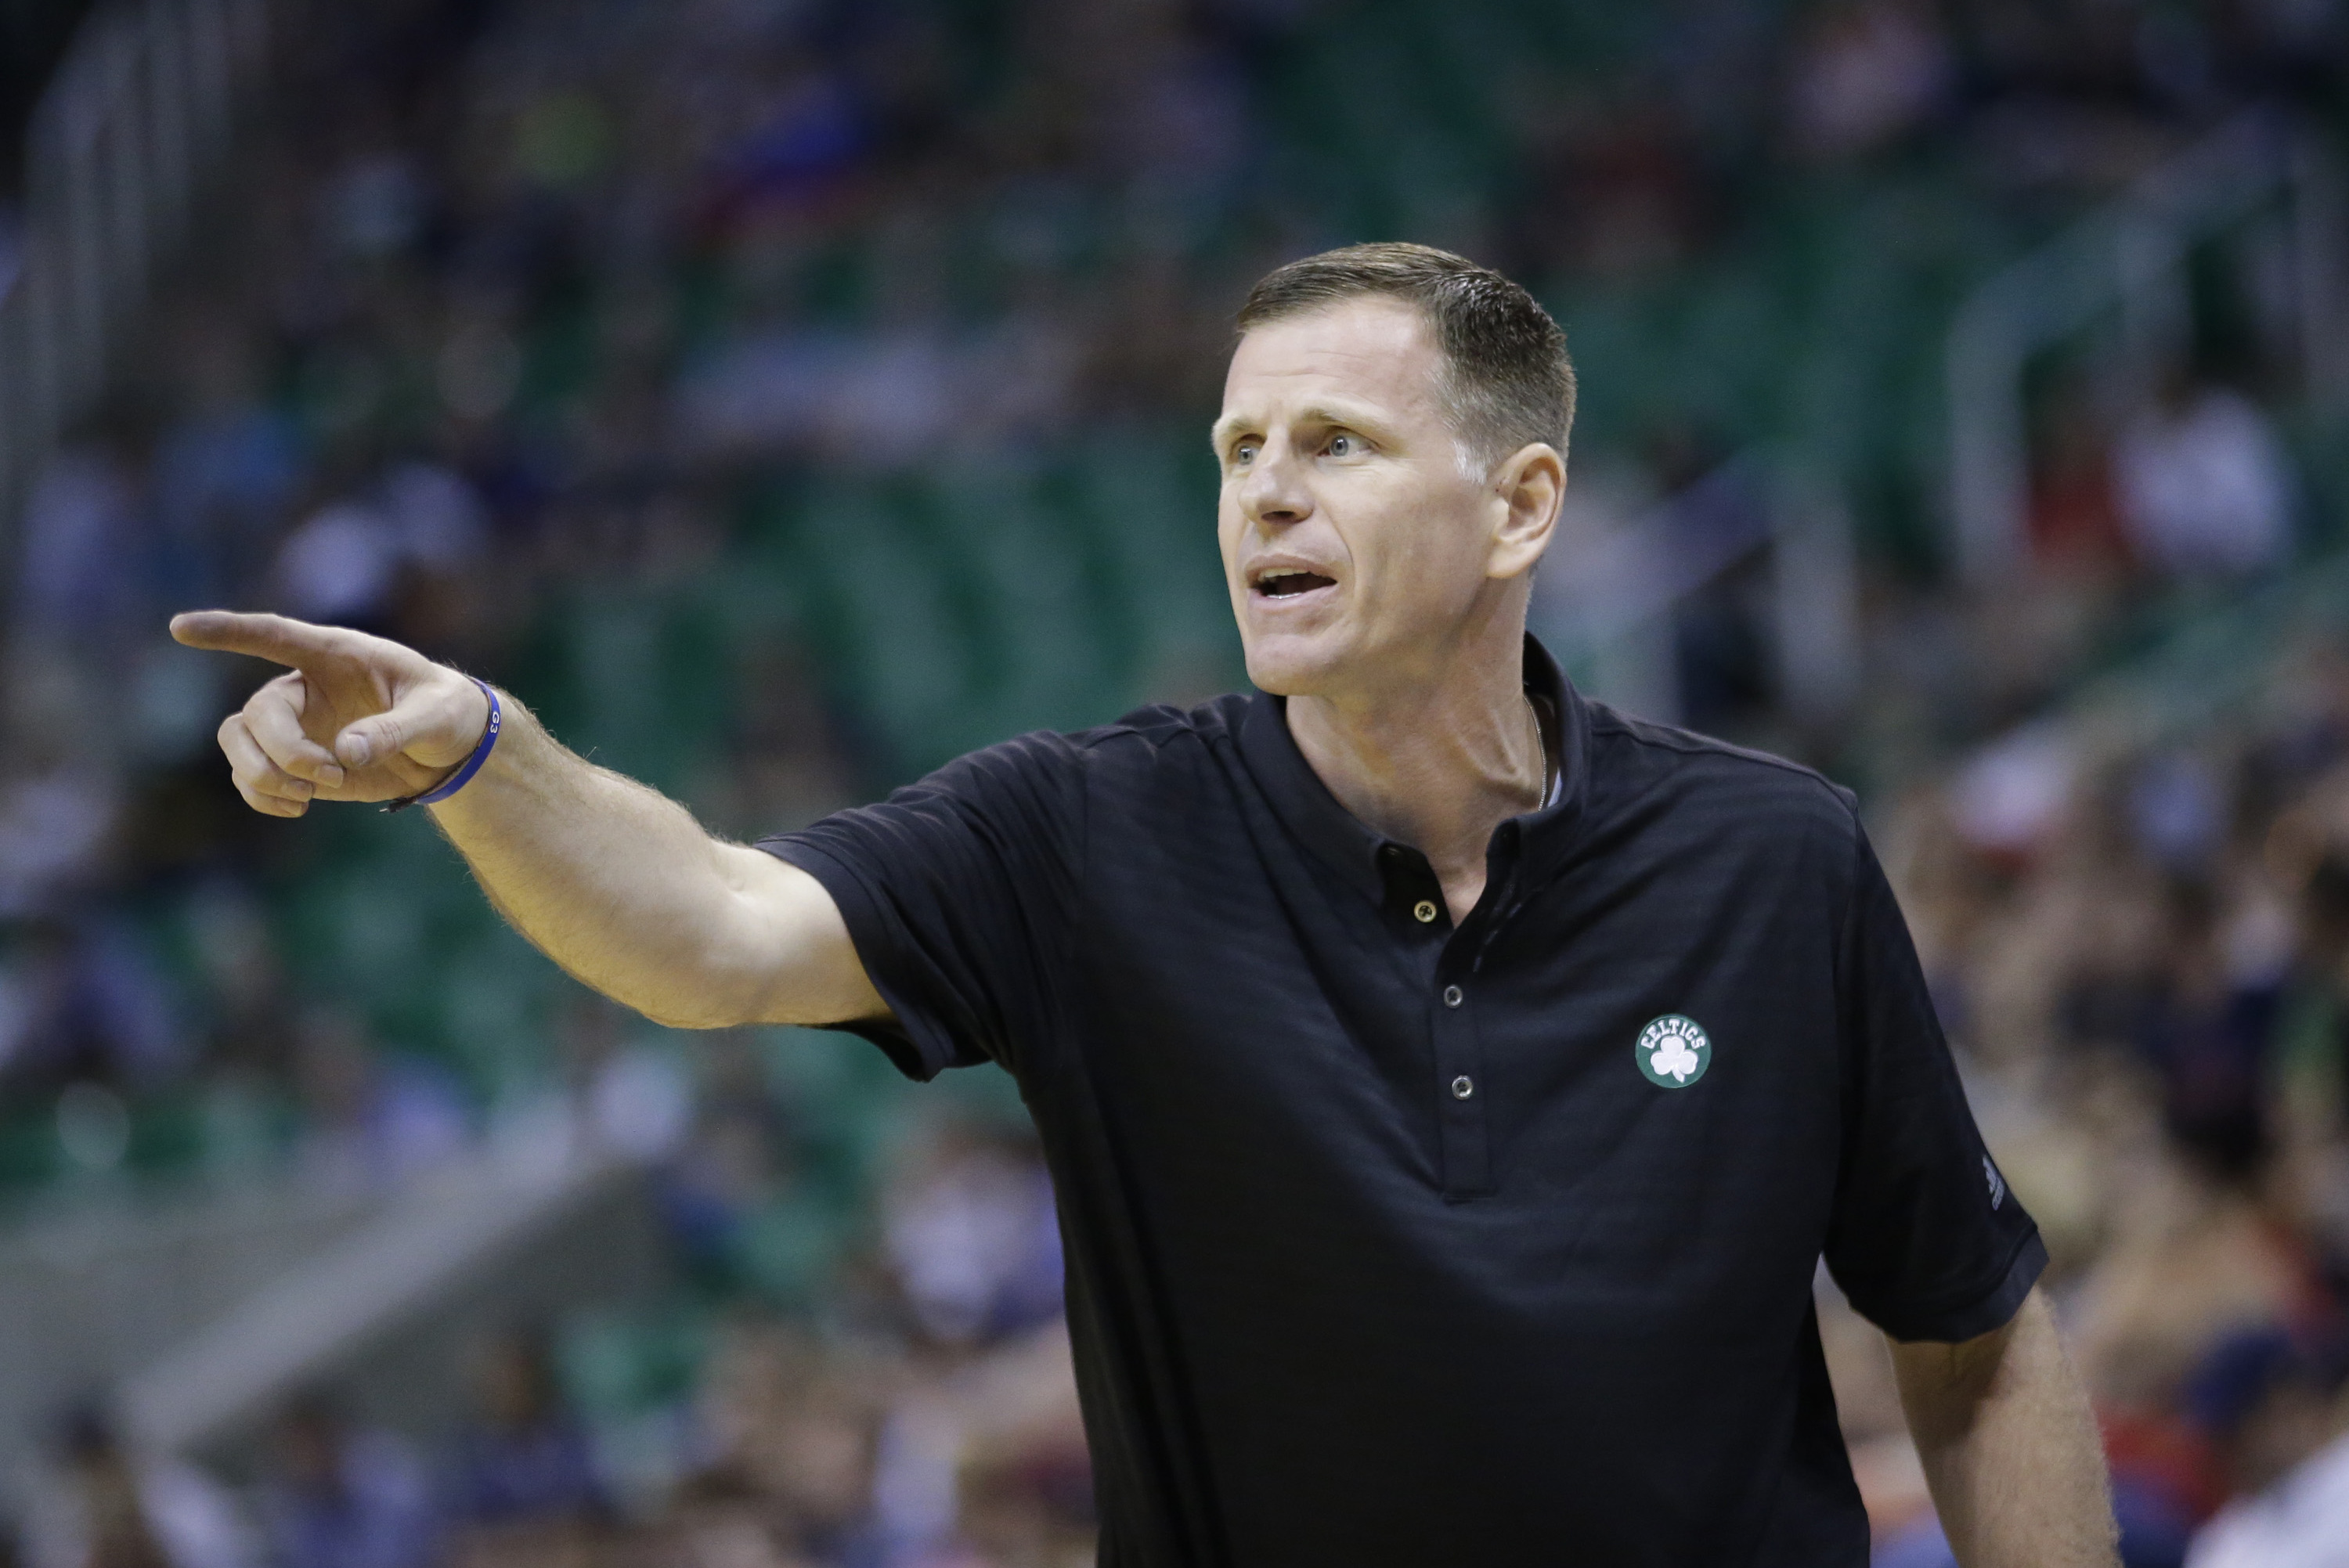 Jay Larranaga coaches in a game during his time as a Celtics assistant coach